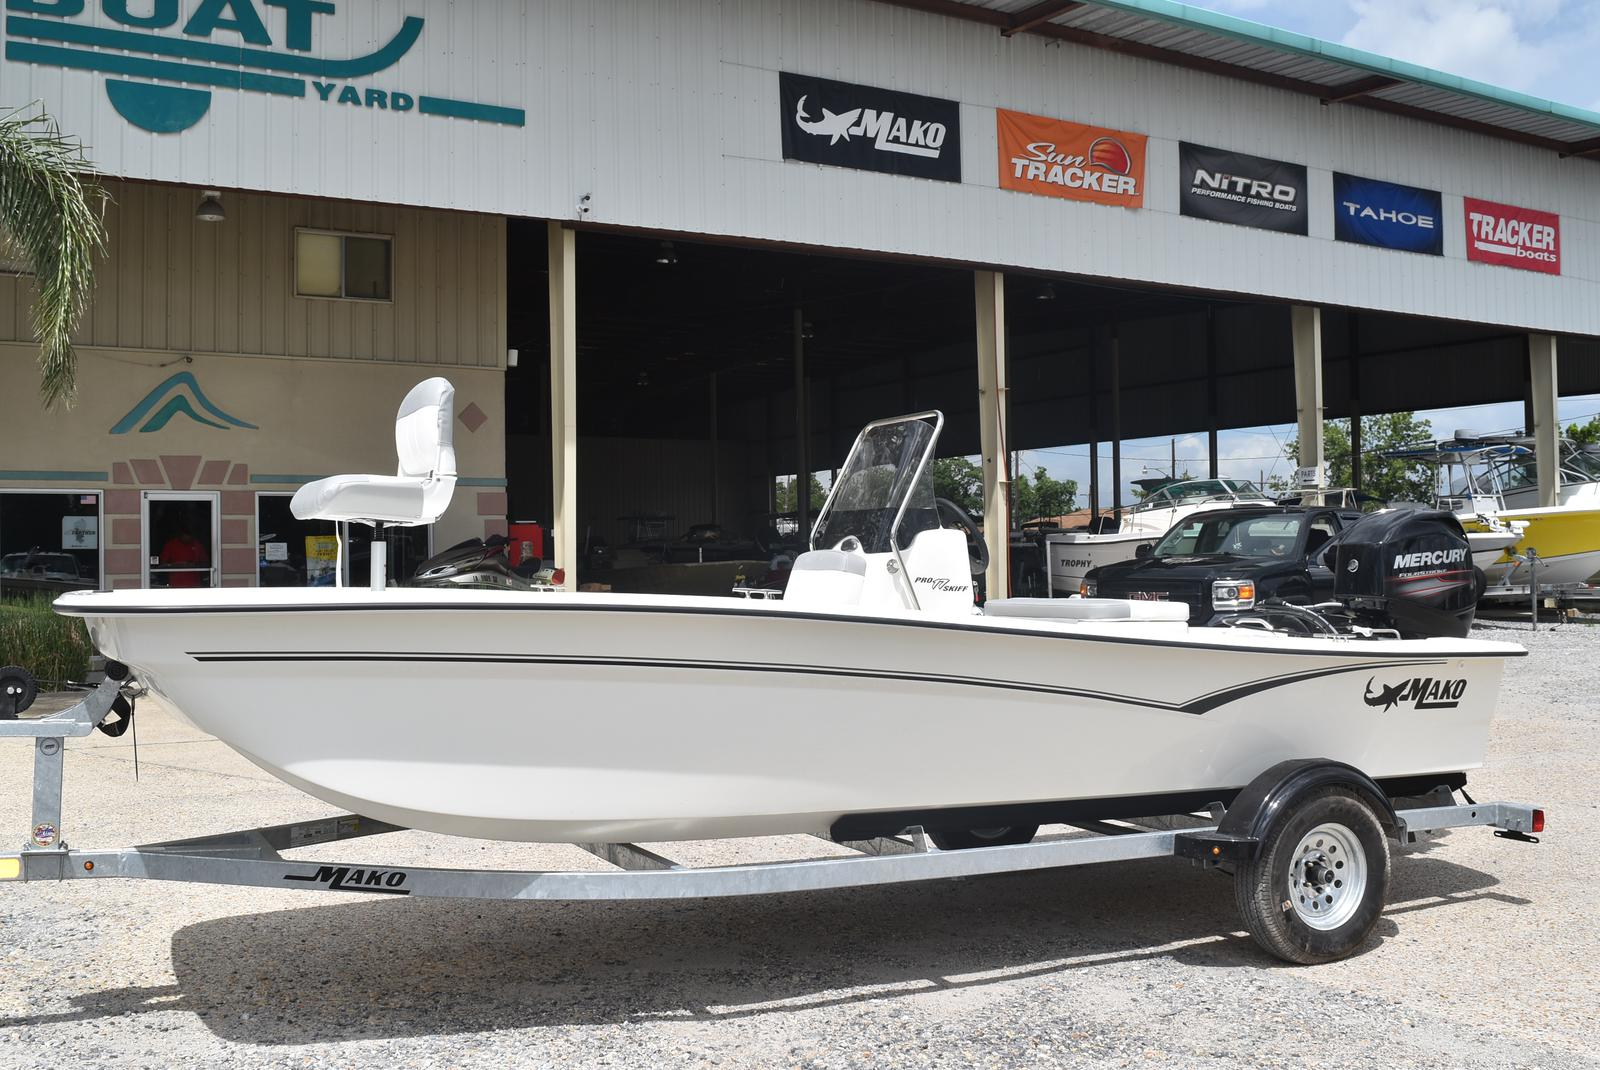 2020 Mako boat for sale, model of the boat is Pro Skiff 17, 75 ELPT & Image # 133 of 702